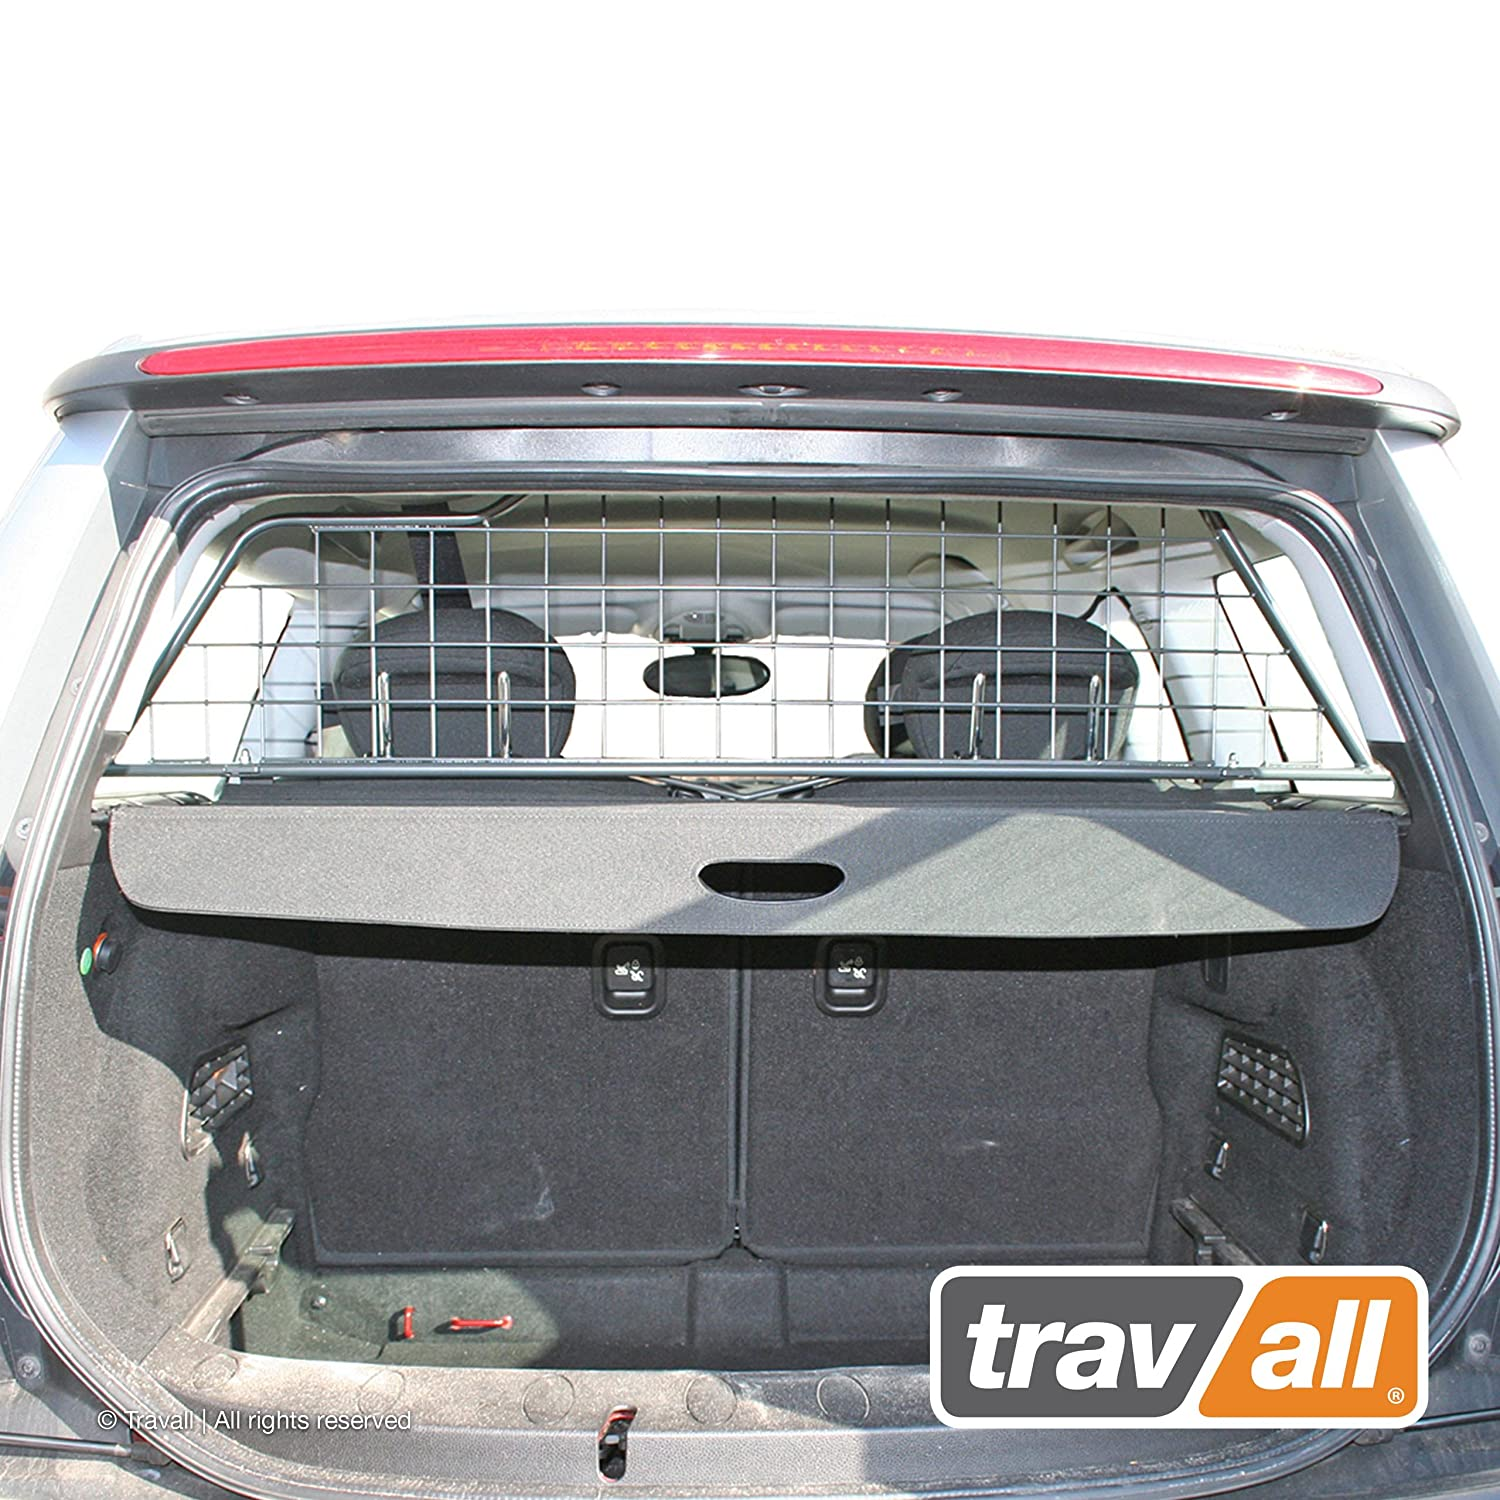 Travall Guard Compatible with Mini Cooper Clubman 2007-2014 TDG1361 – Rattle-Free Steel Pet Barrier